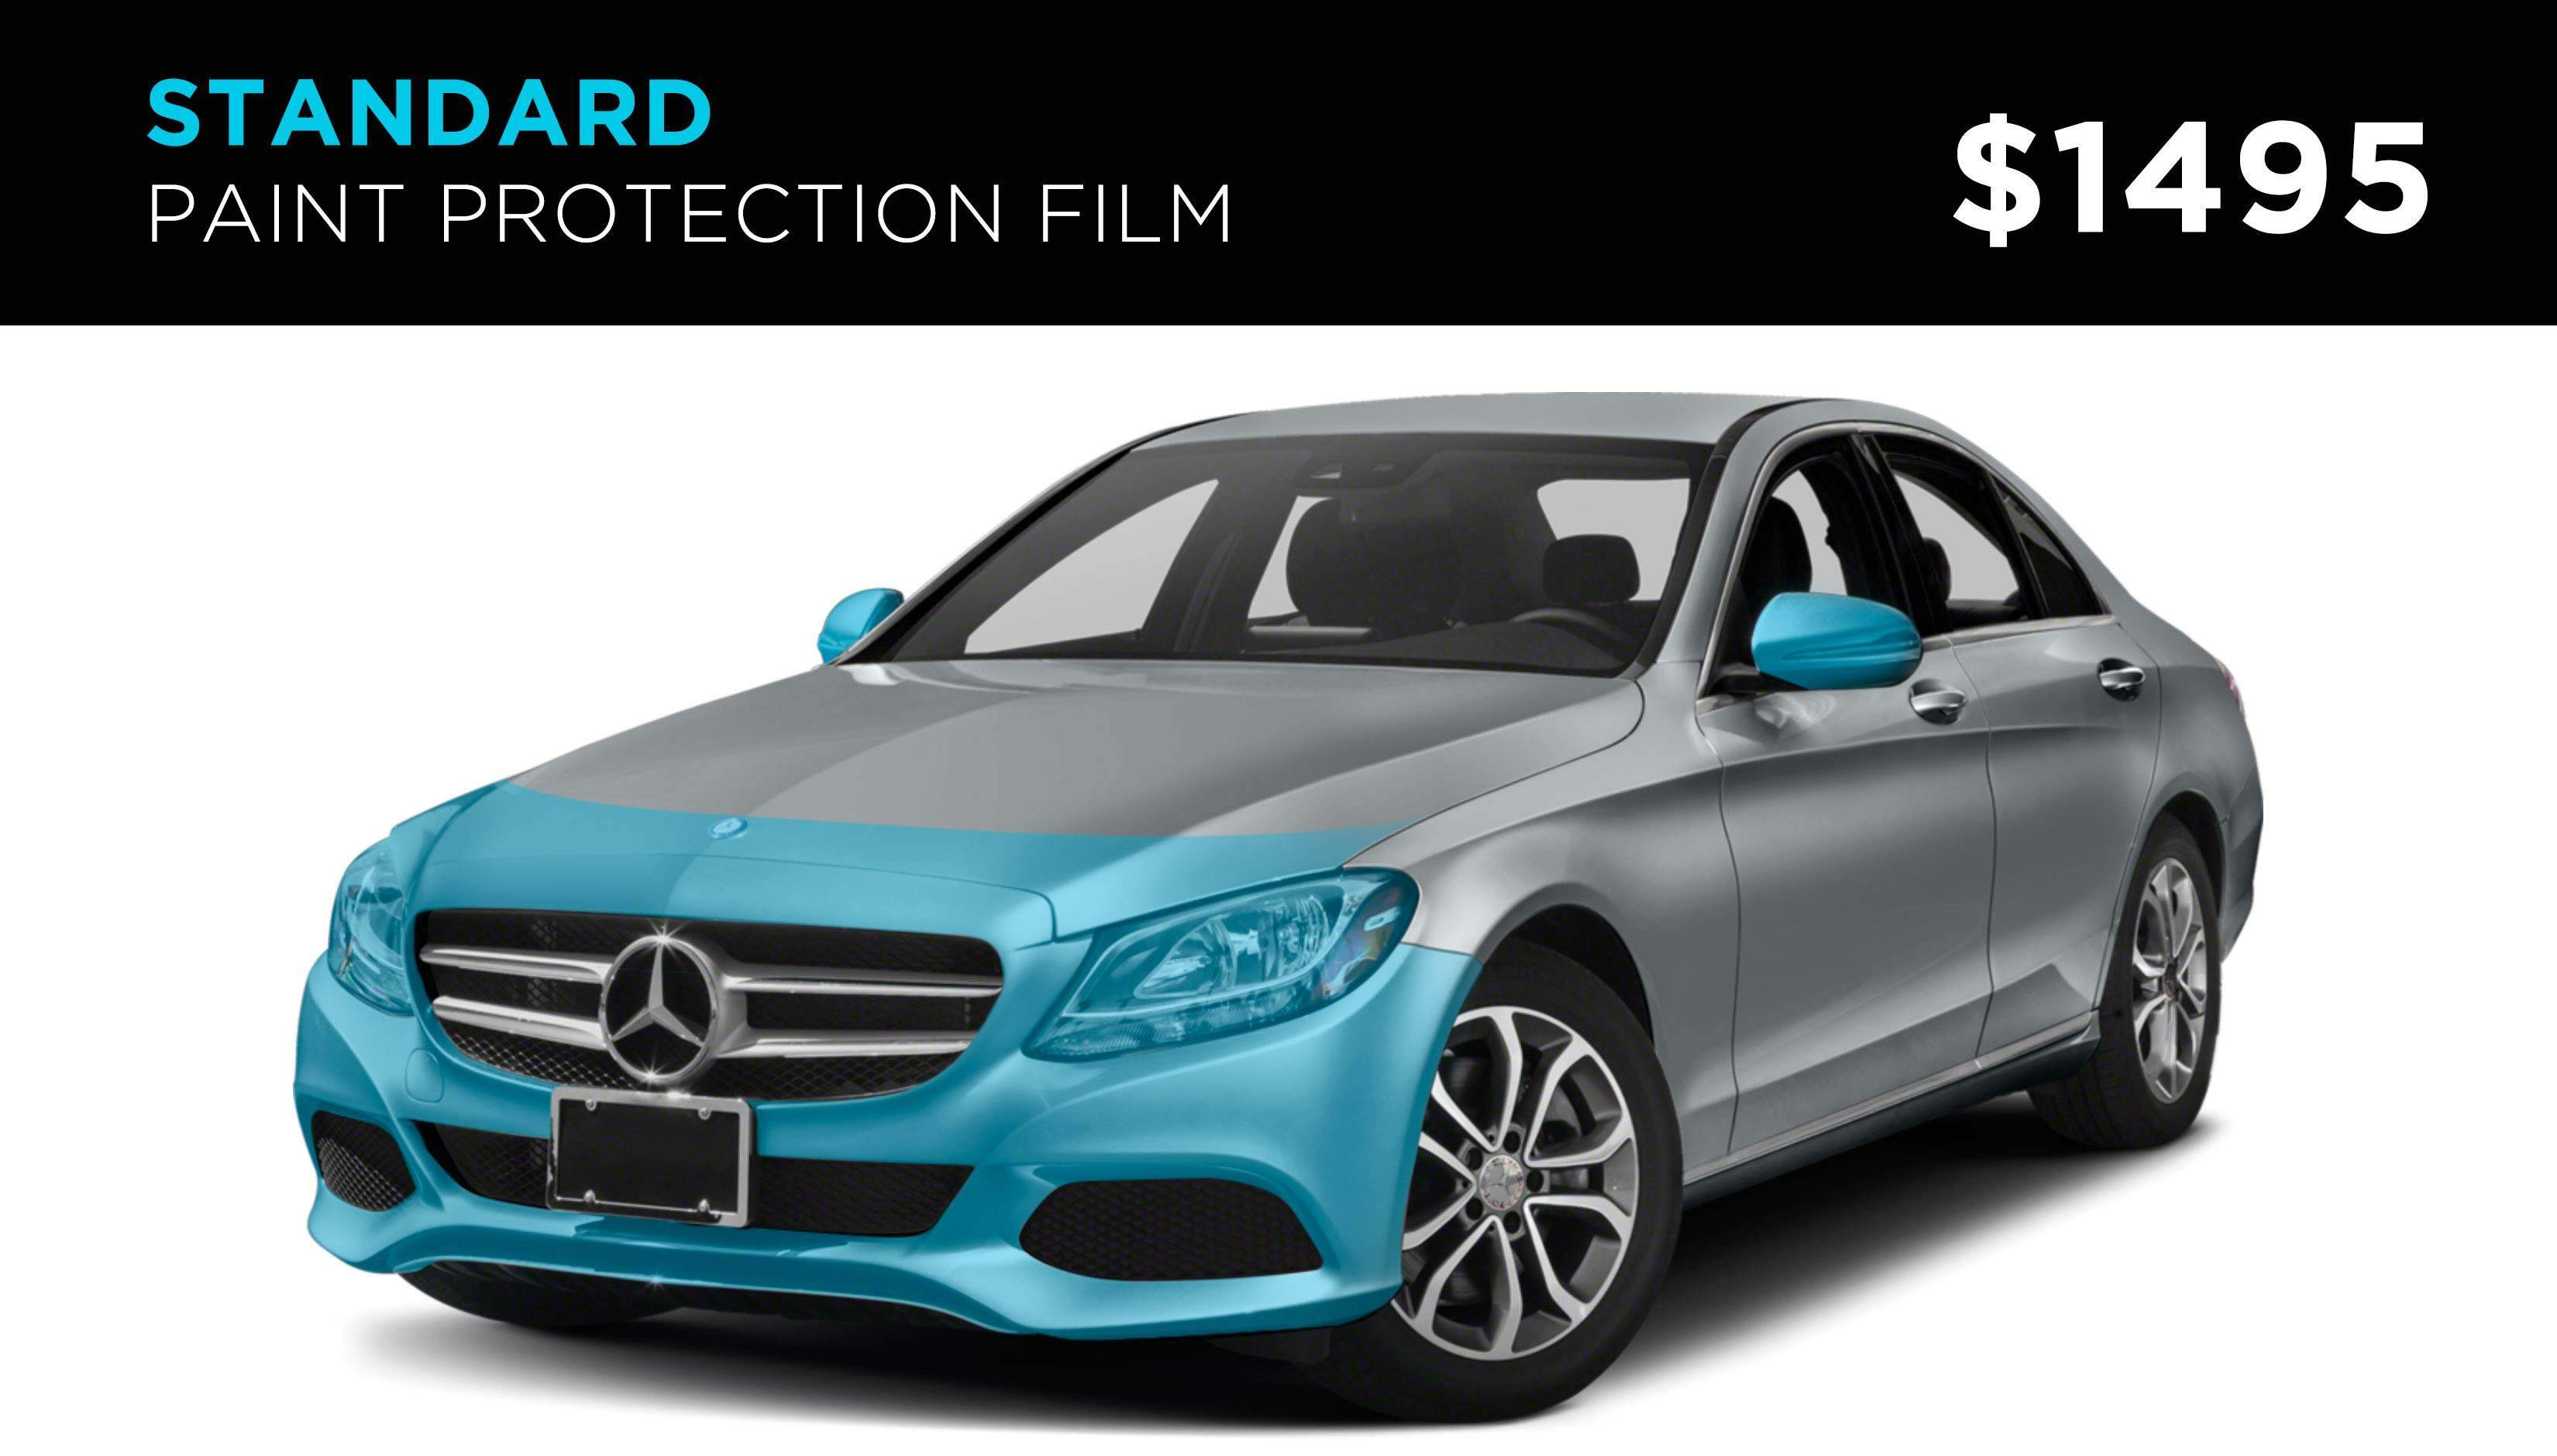 Standard Paint Protection